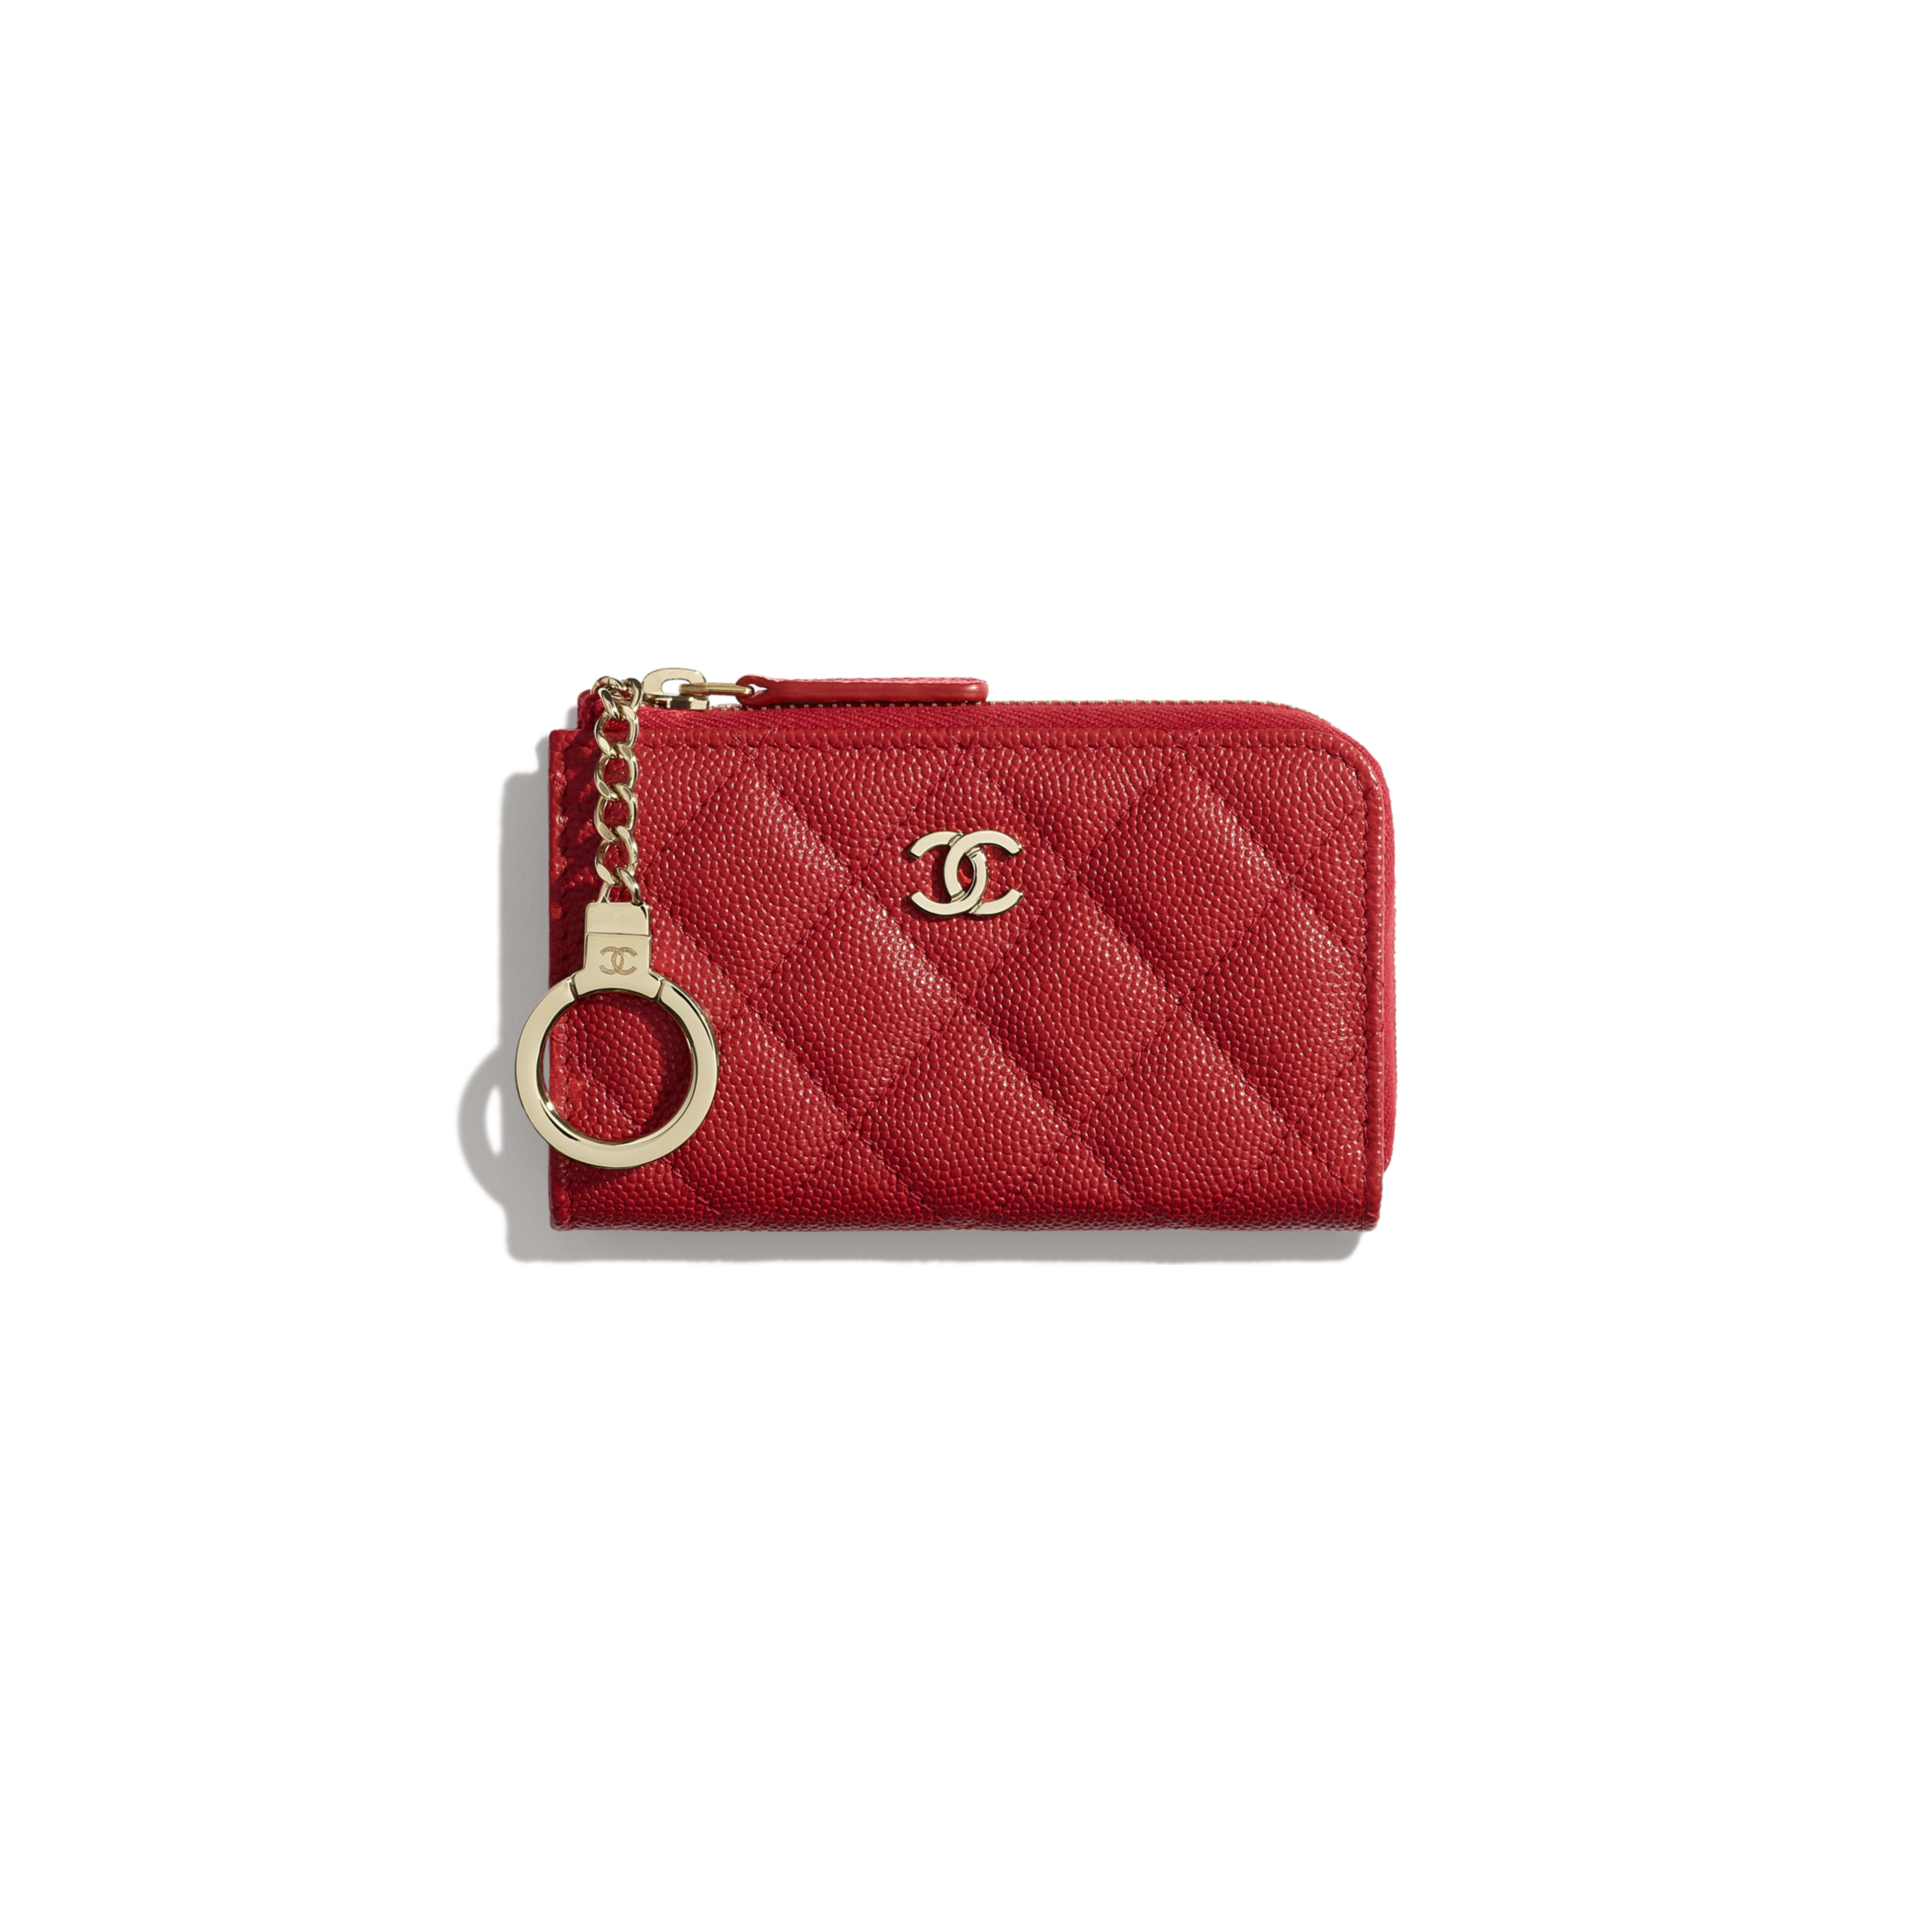 Classic Zipped Key Holder - Red - Grained Calfskin & Gold-Tone Metal - Default view - see full sized version